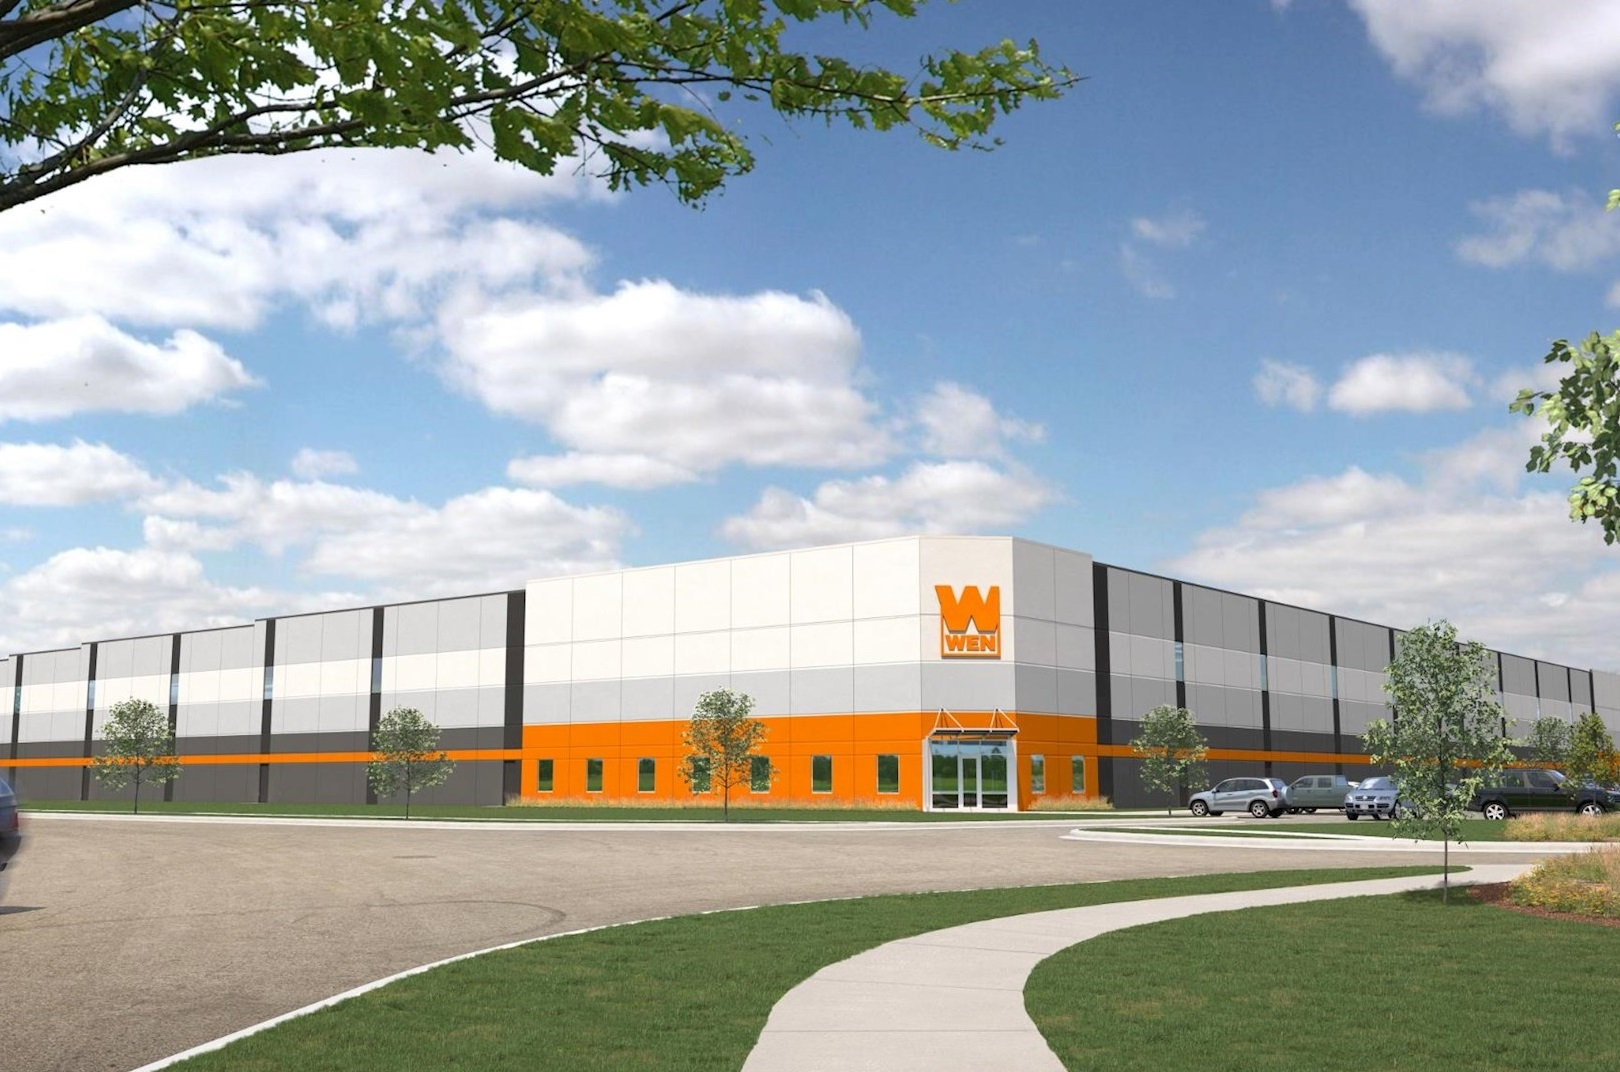 WEN's new facility is expected to open in West Dundee in March 2021. (The Opus Group)